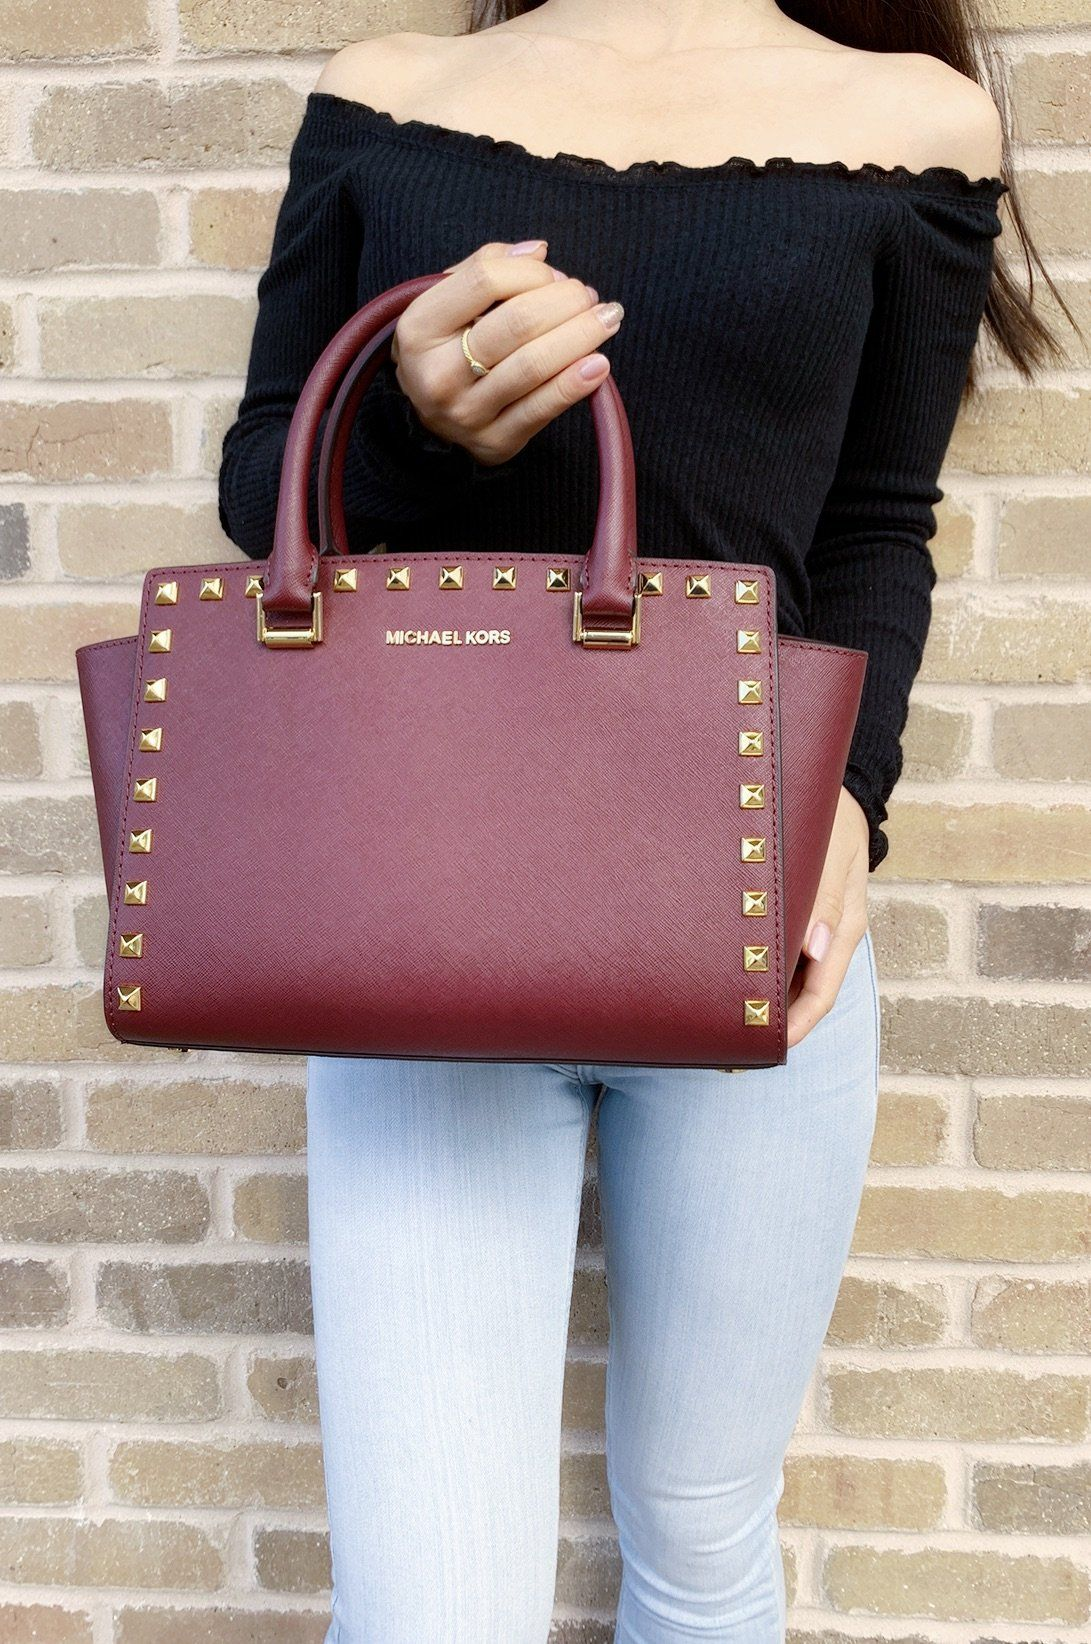 afcacb4d8f9e74 Michael Kors Medium Selma Studded Merlot Satchel Saffiano Leather Crossbody